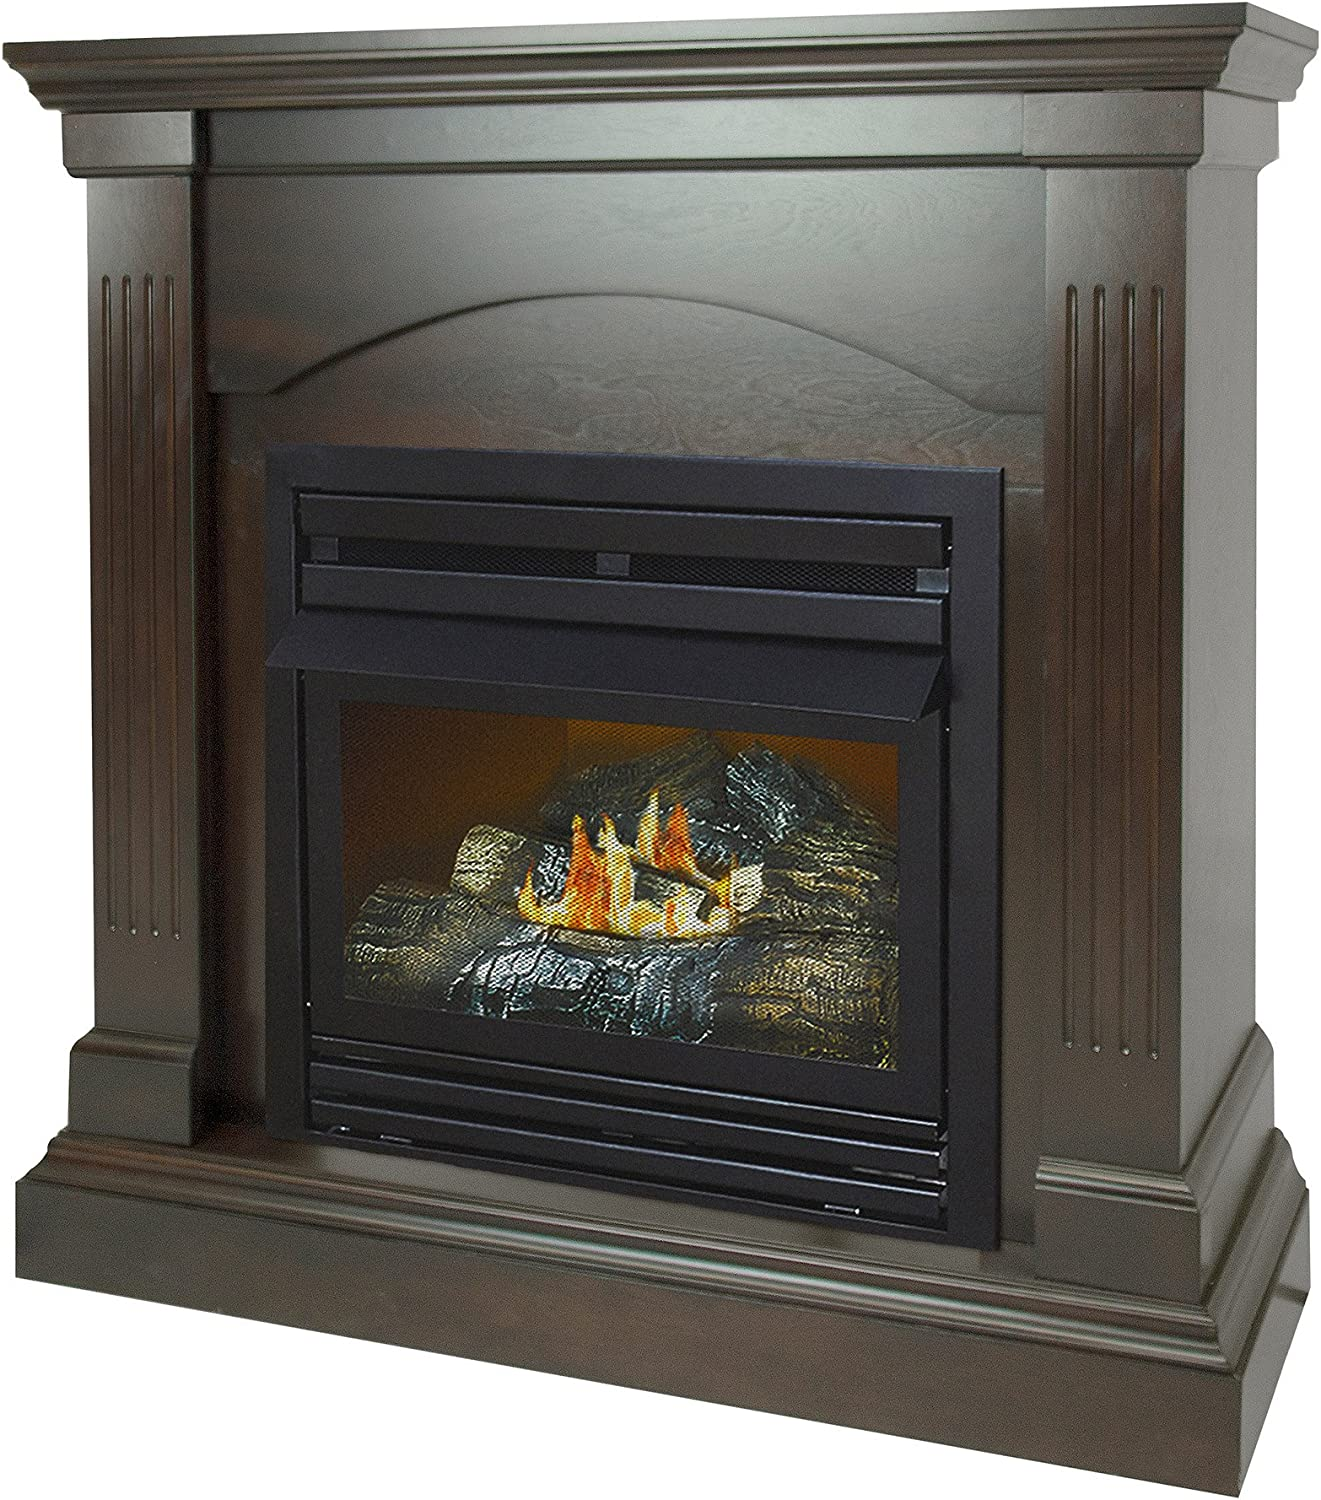 Max 59% OFF Pleasant Hearth 36 Compact Tobacco Vent Firepla Gas Free Sales for sale Natural